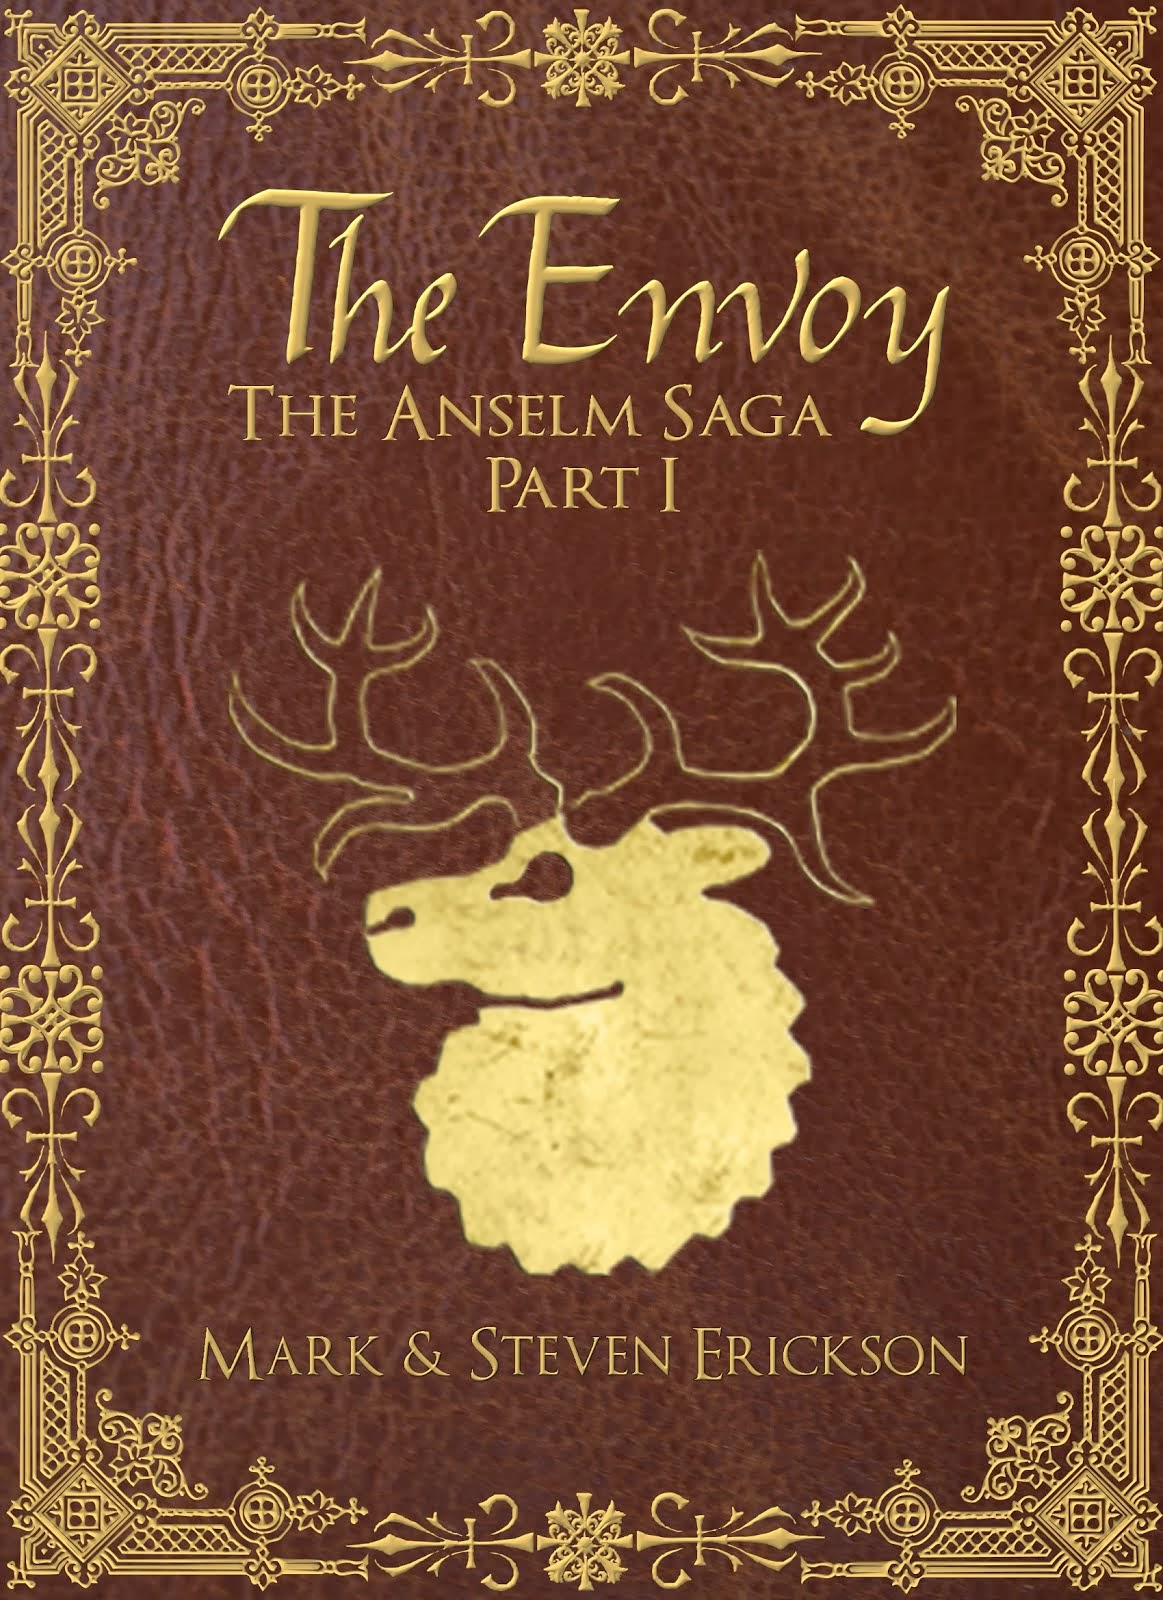 The Envoy - Part I of the Anselm Saga